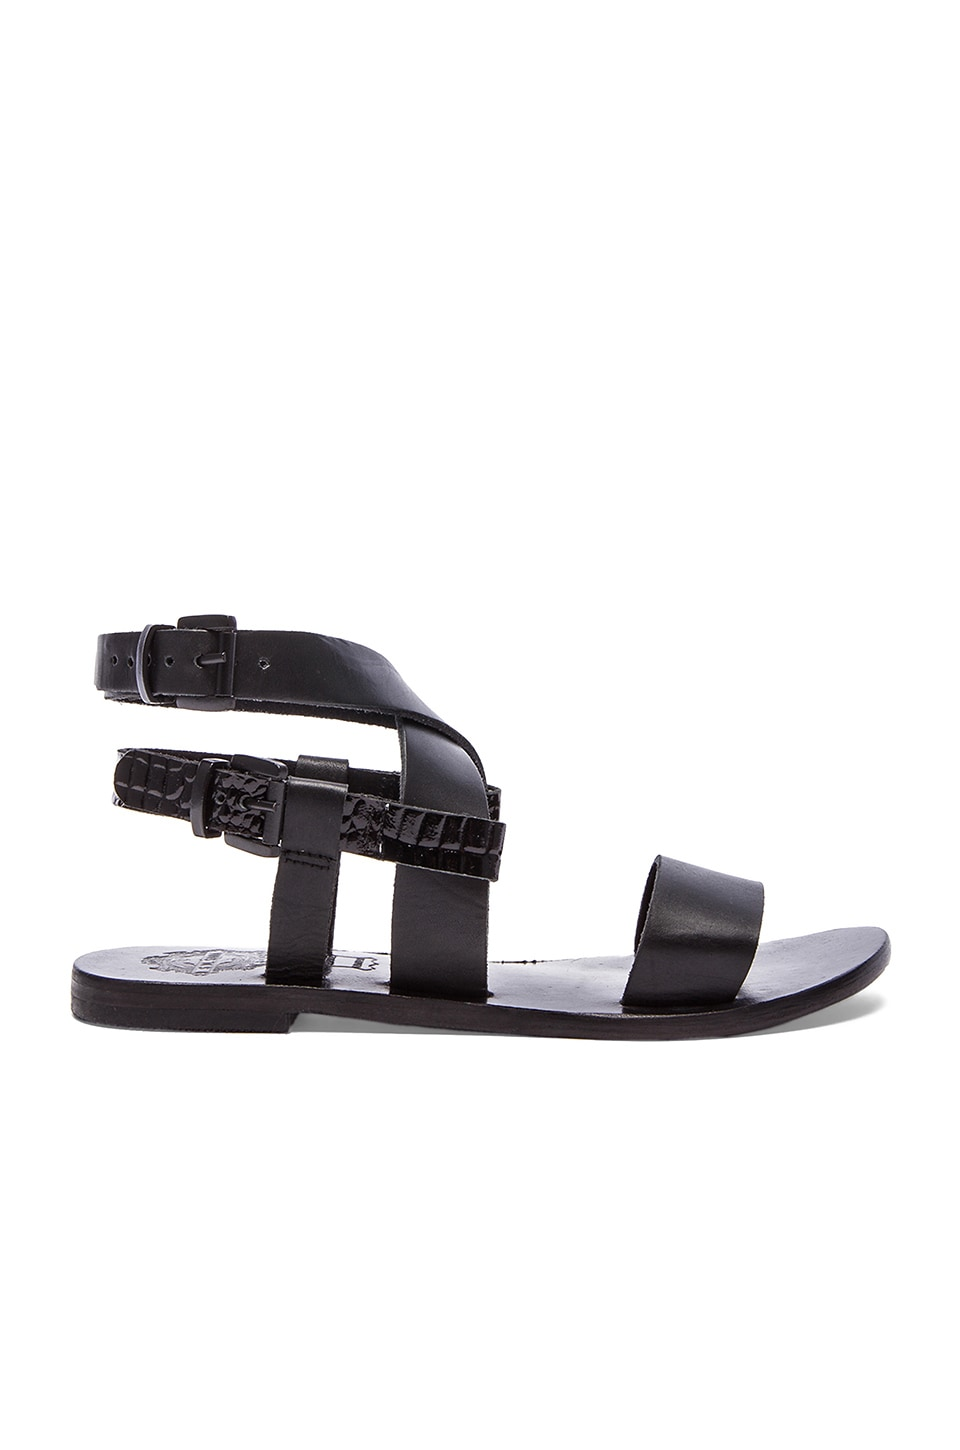 Sol Sana Avery II Sandal in Black